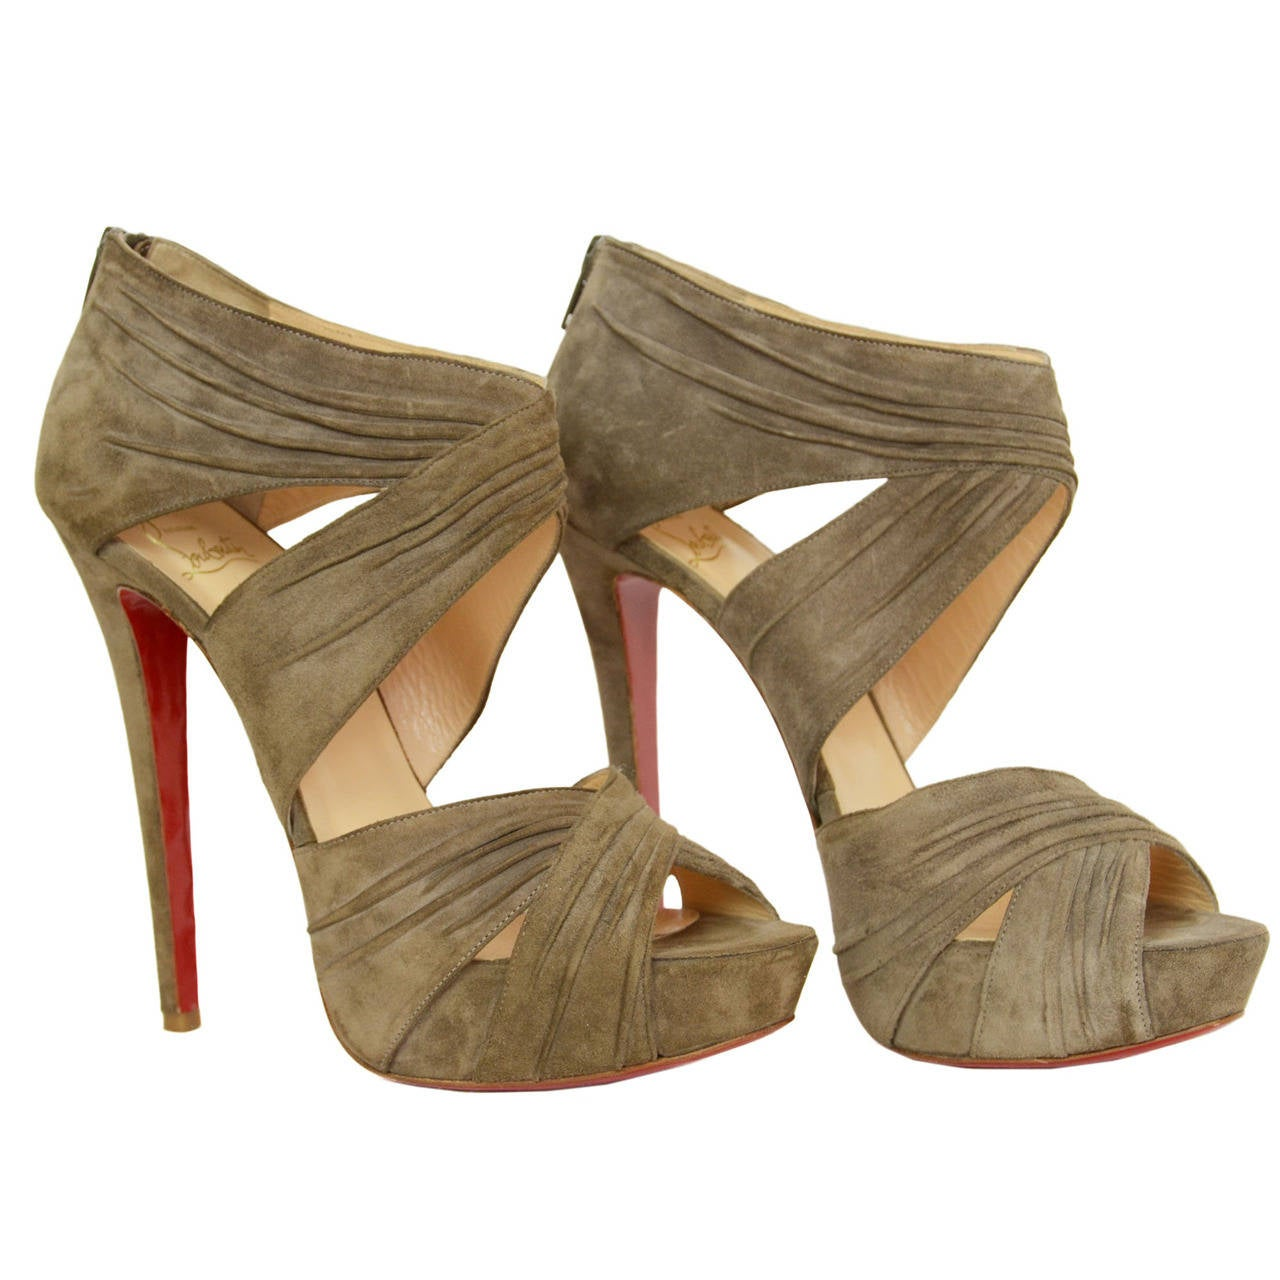 CHRISTIAN LOUBOUTIN Ruched Taupe Suede Bandra 140 Pumps sz 40.5 1